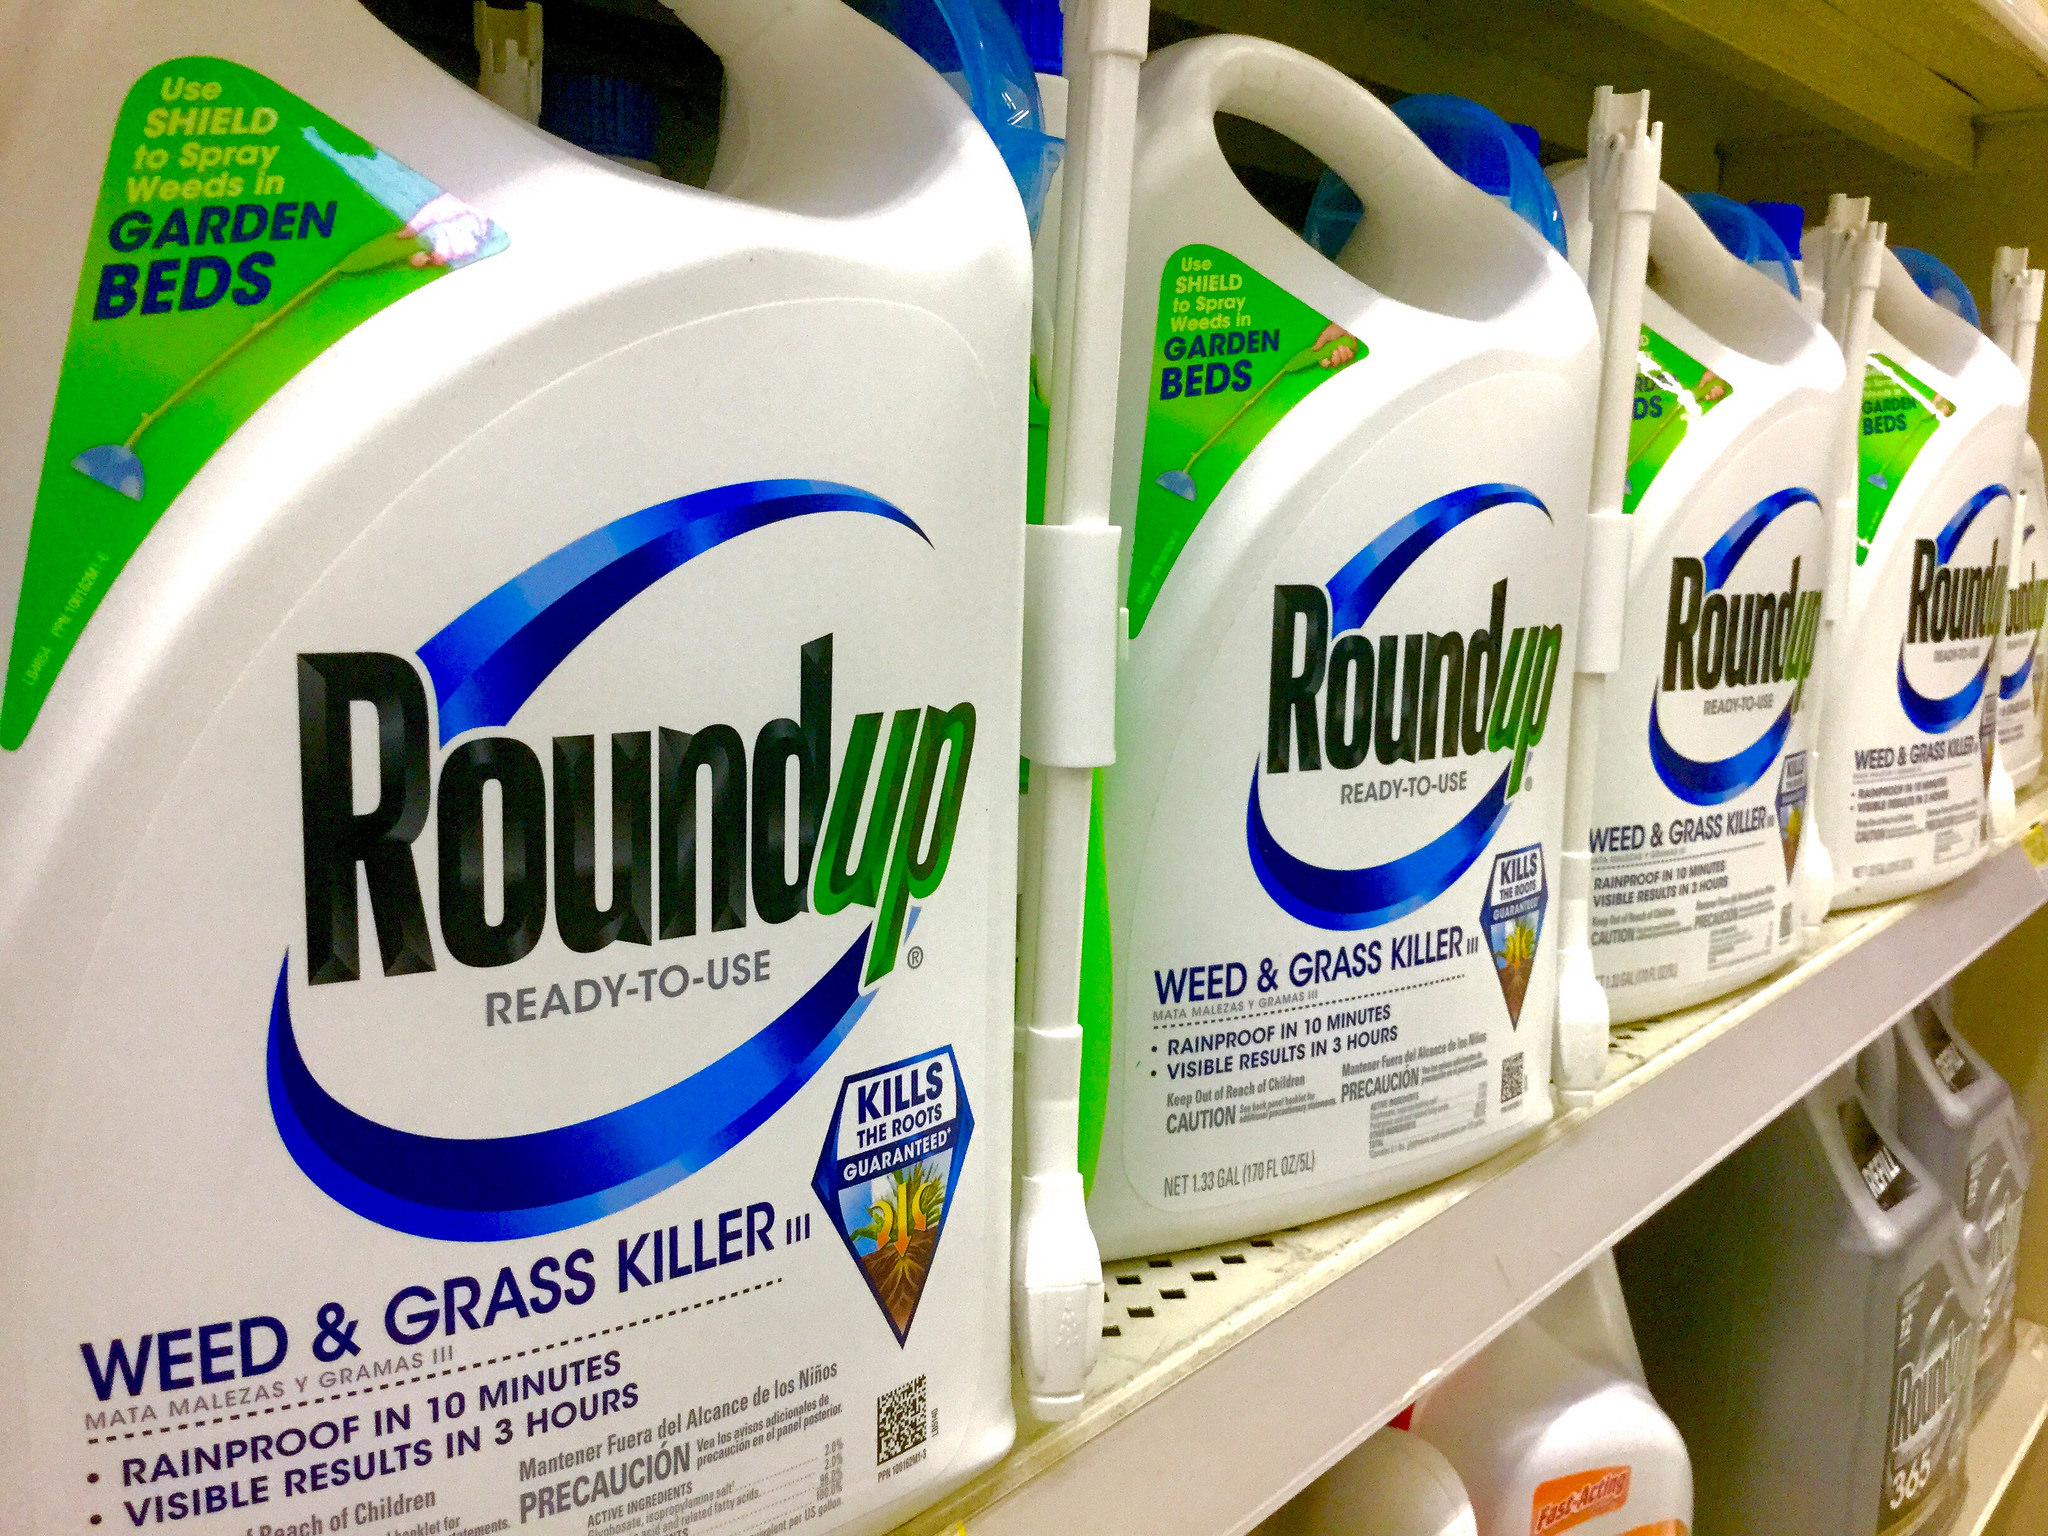 Monsanto loses glyphosate cancer case – Expert Reaction